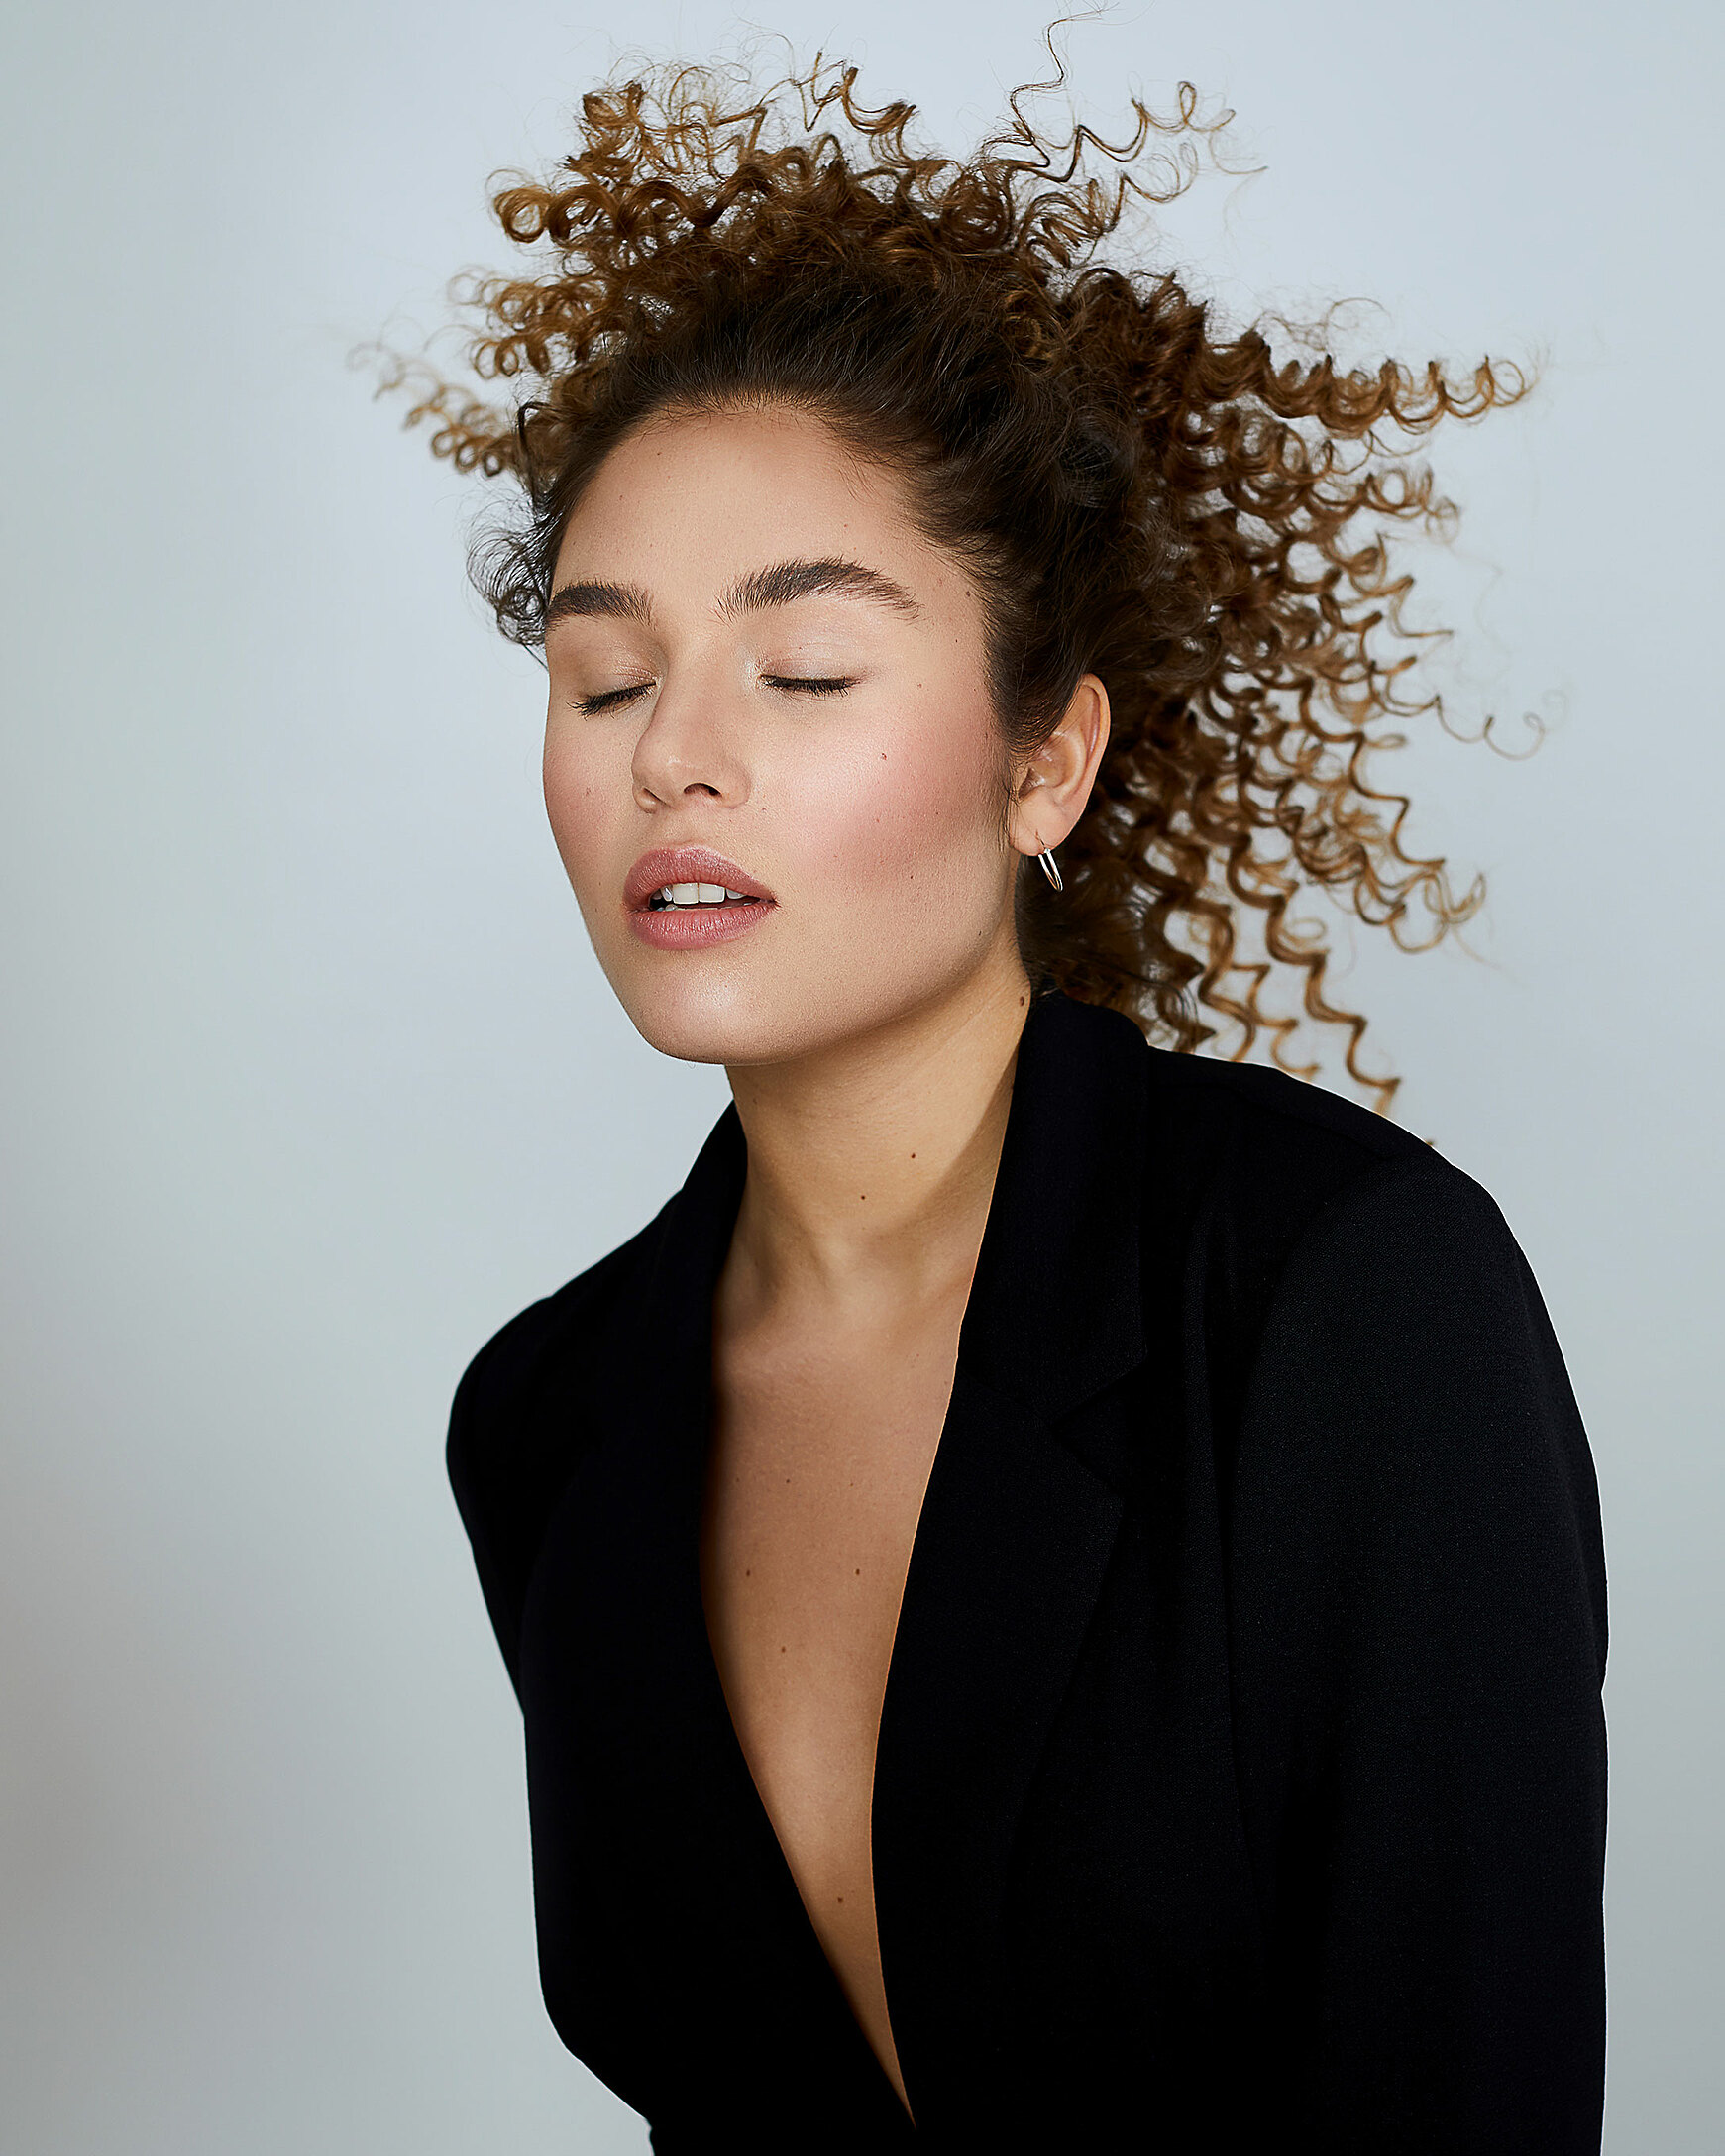 A female model with big curly hair in a bun and a natural makeup. Her hair blows away. She wears a black kimono.